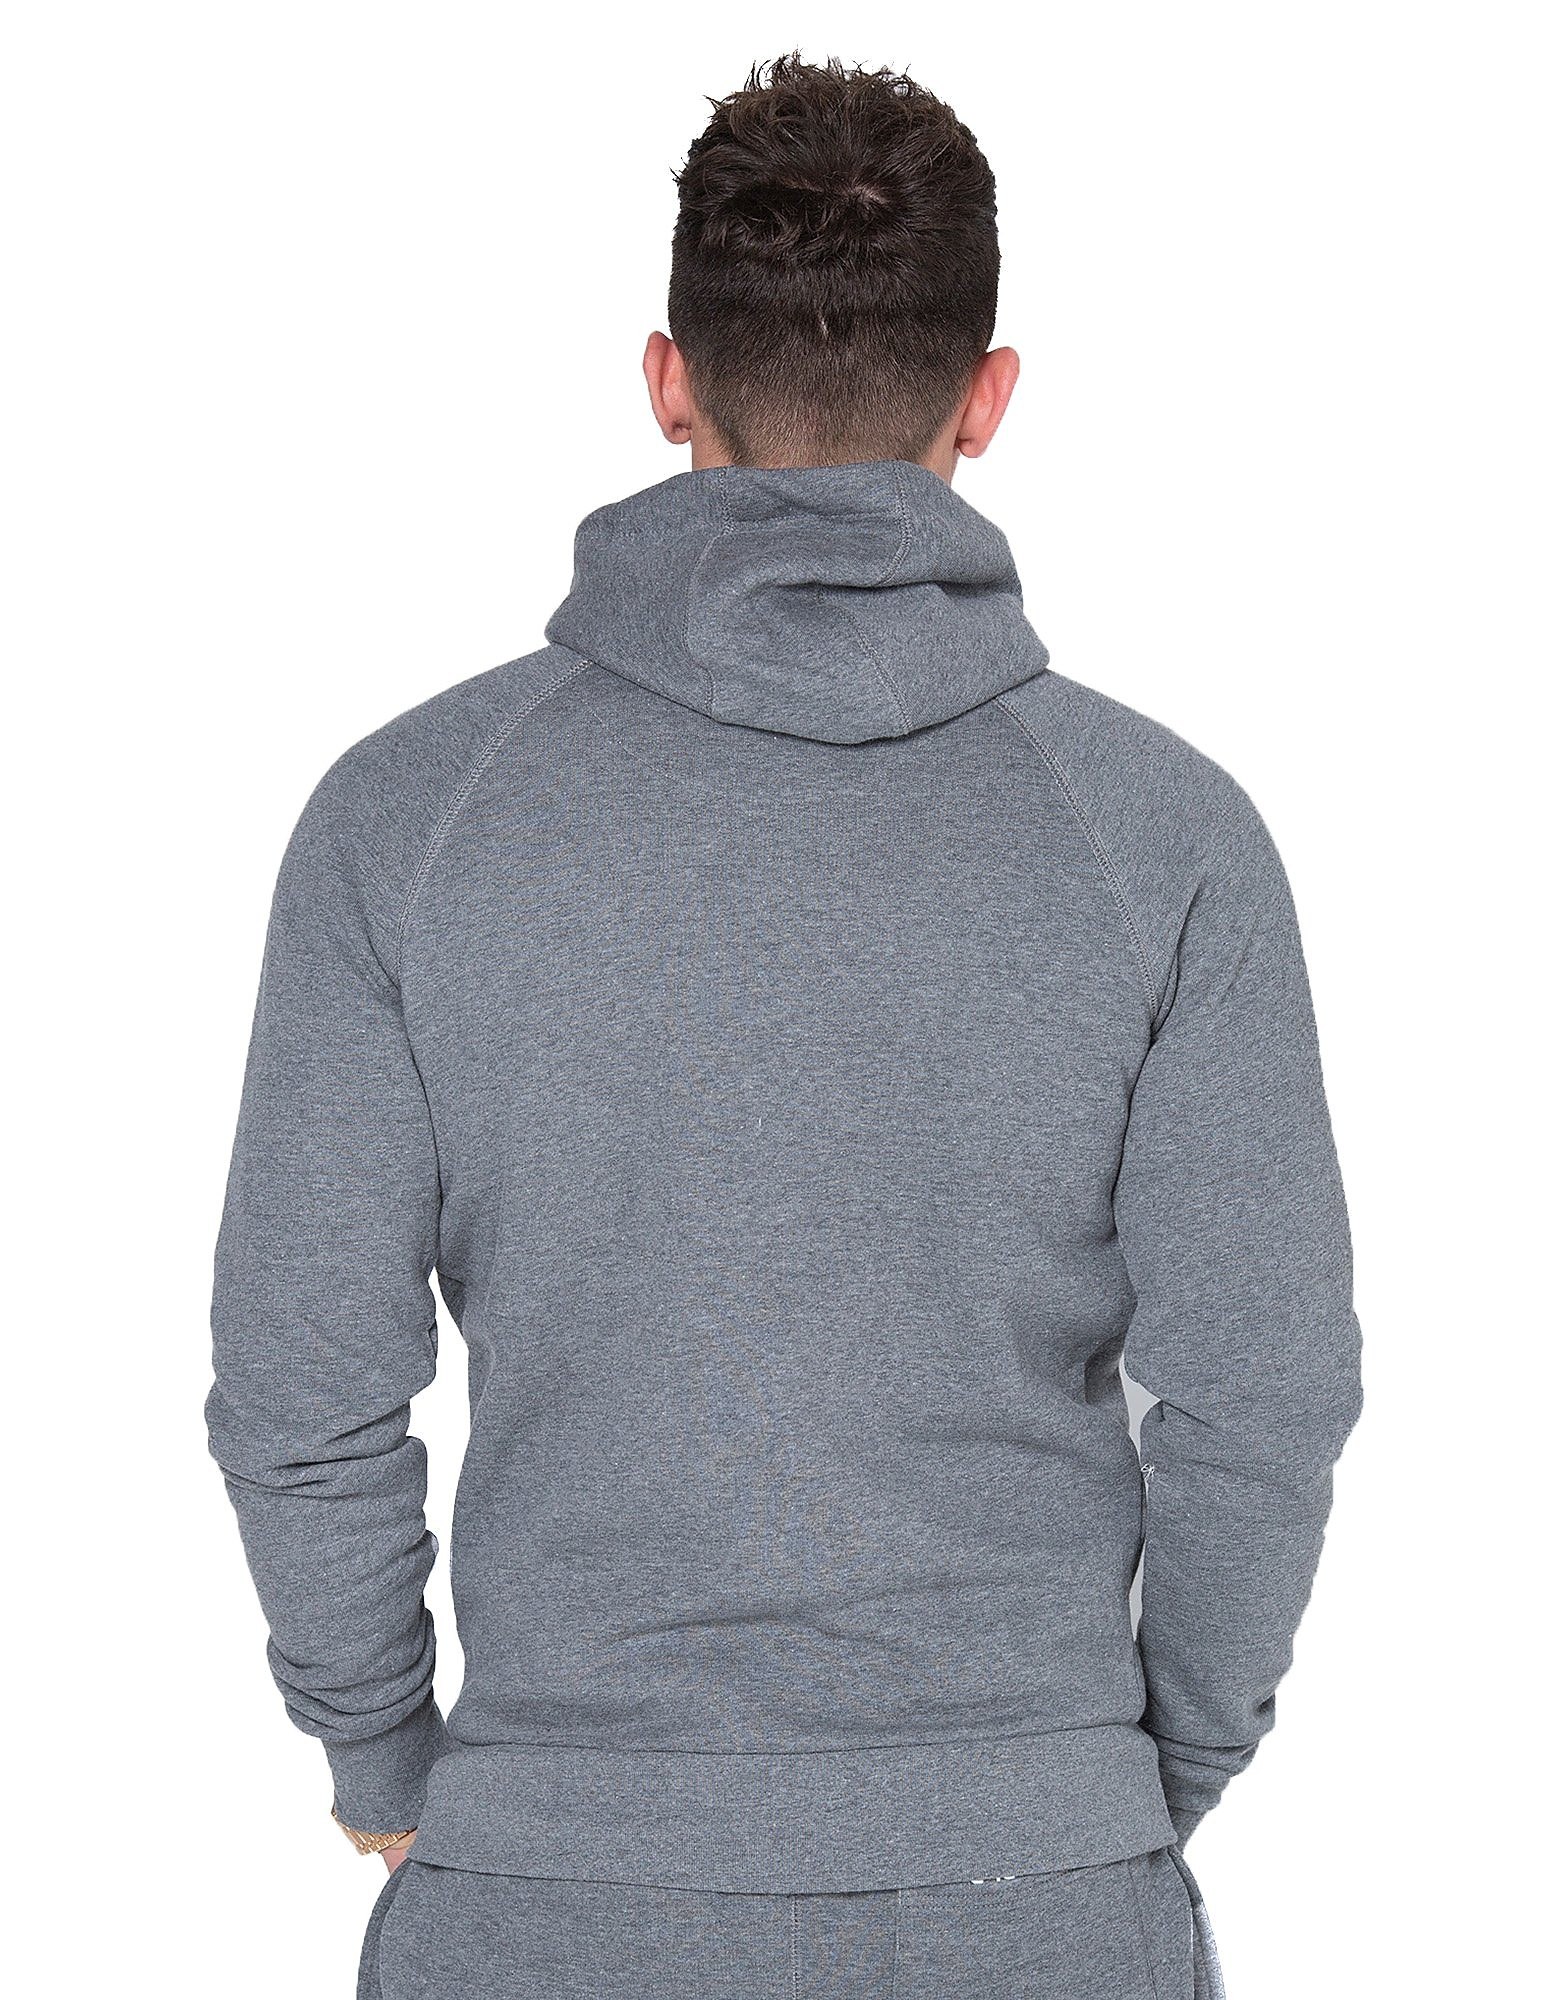 11 Degrees Zip Through Fleece Hoody